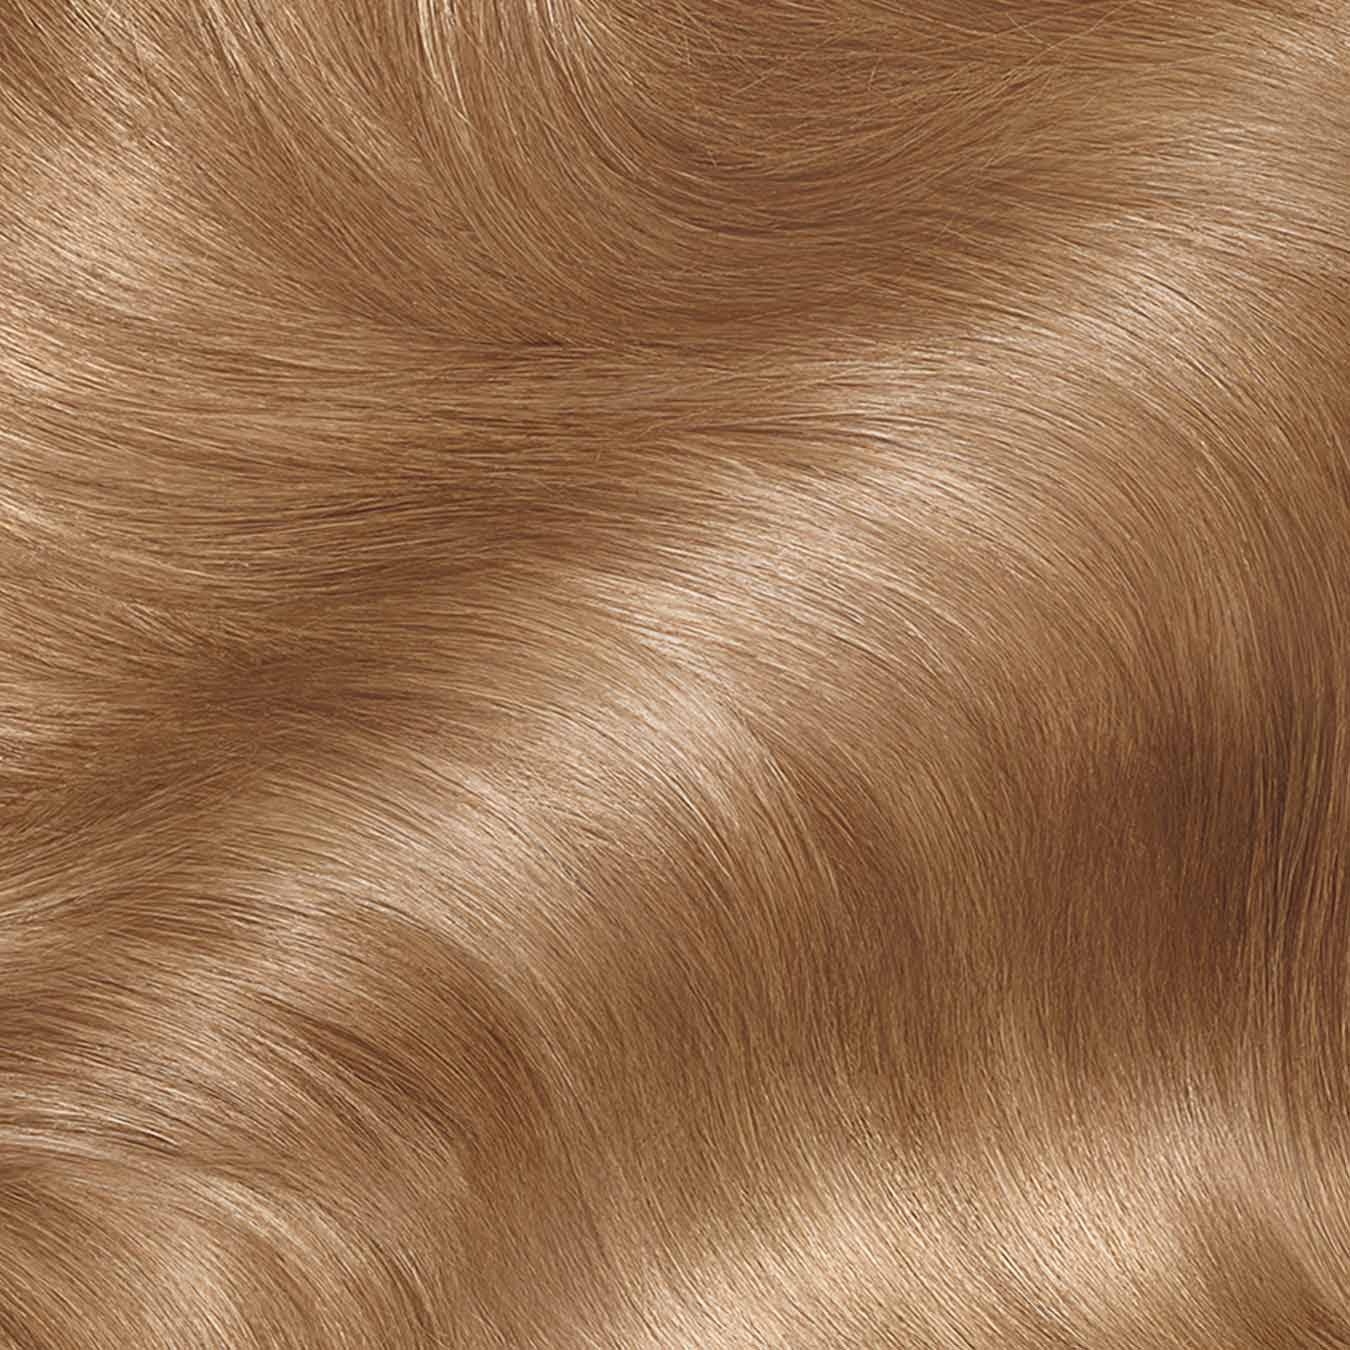 Garnier Color Sensation 7.0 - Dark Natural Blonde Permanent Hair Color